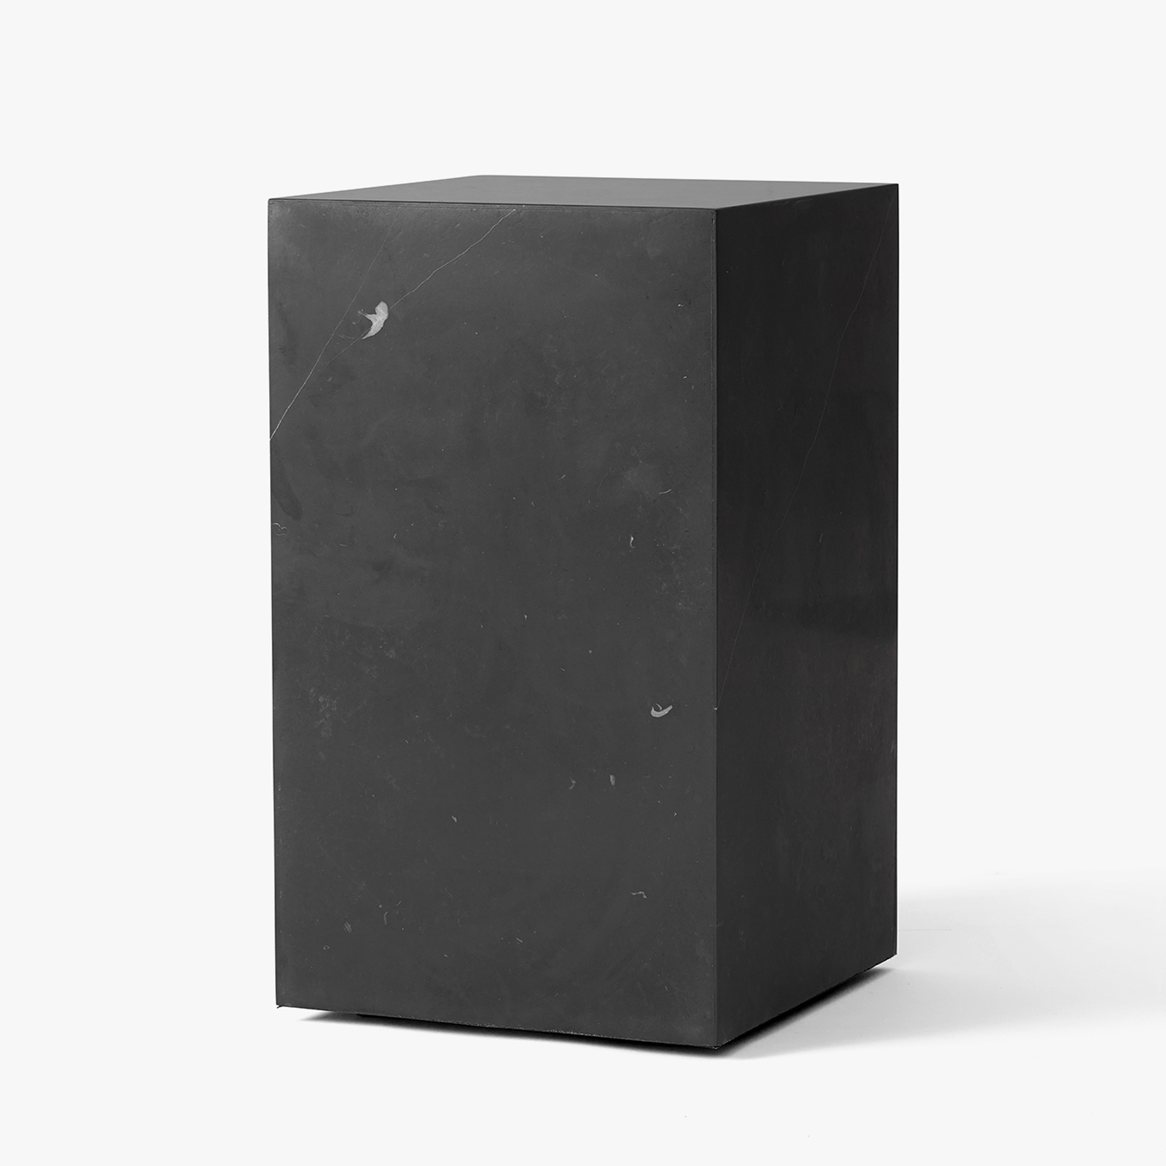 Plinth Tall side table, black.